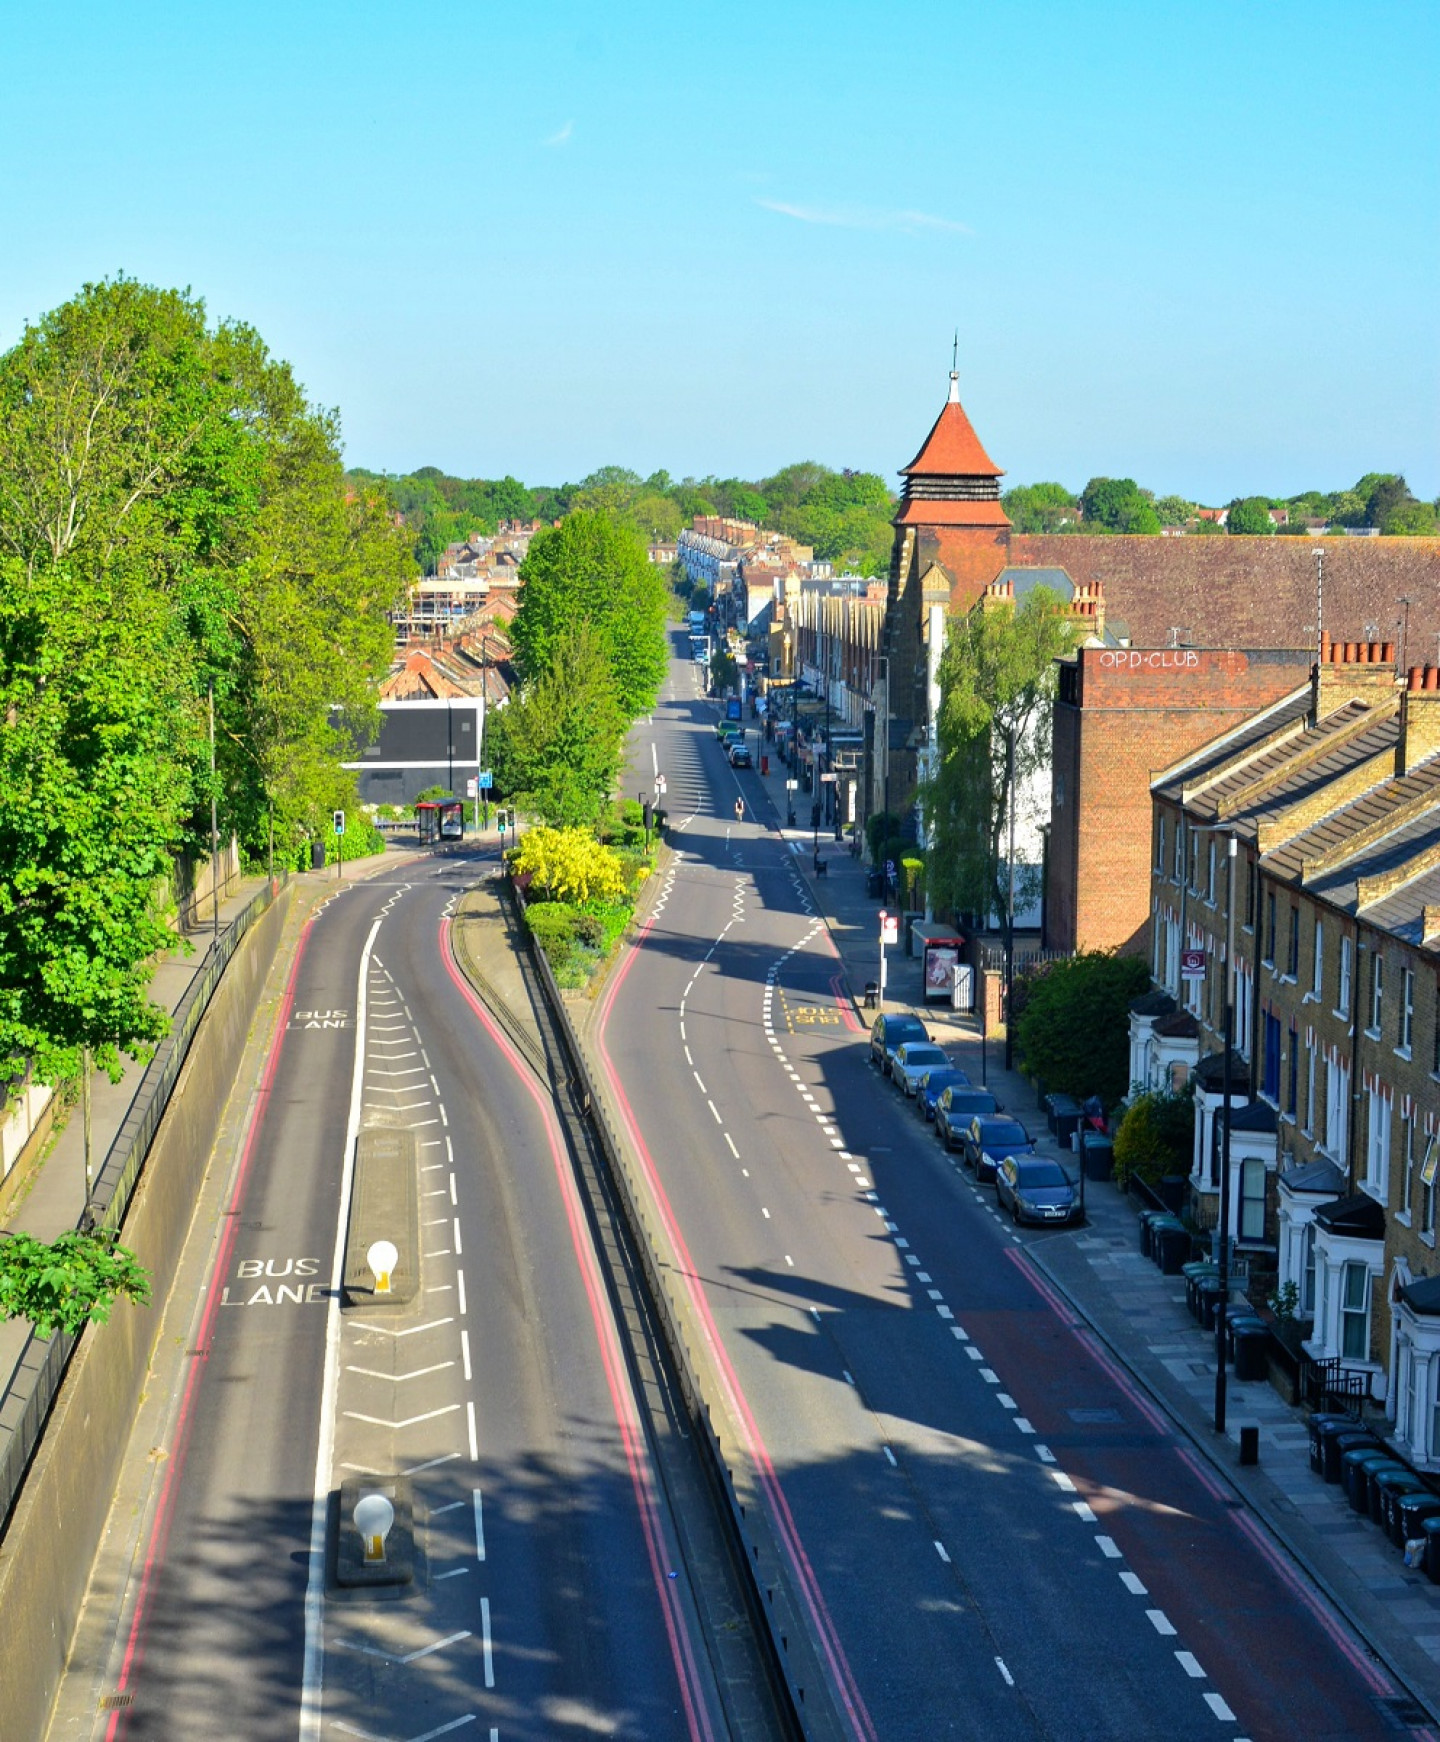 The Great North Rd: looking north towards Highgate. Taken from 'suicide bridge', Sunday 26 April, 9.53 am. © George Demetri